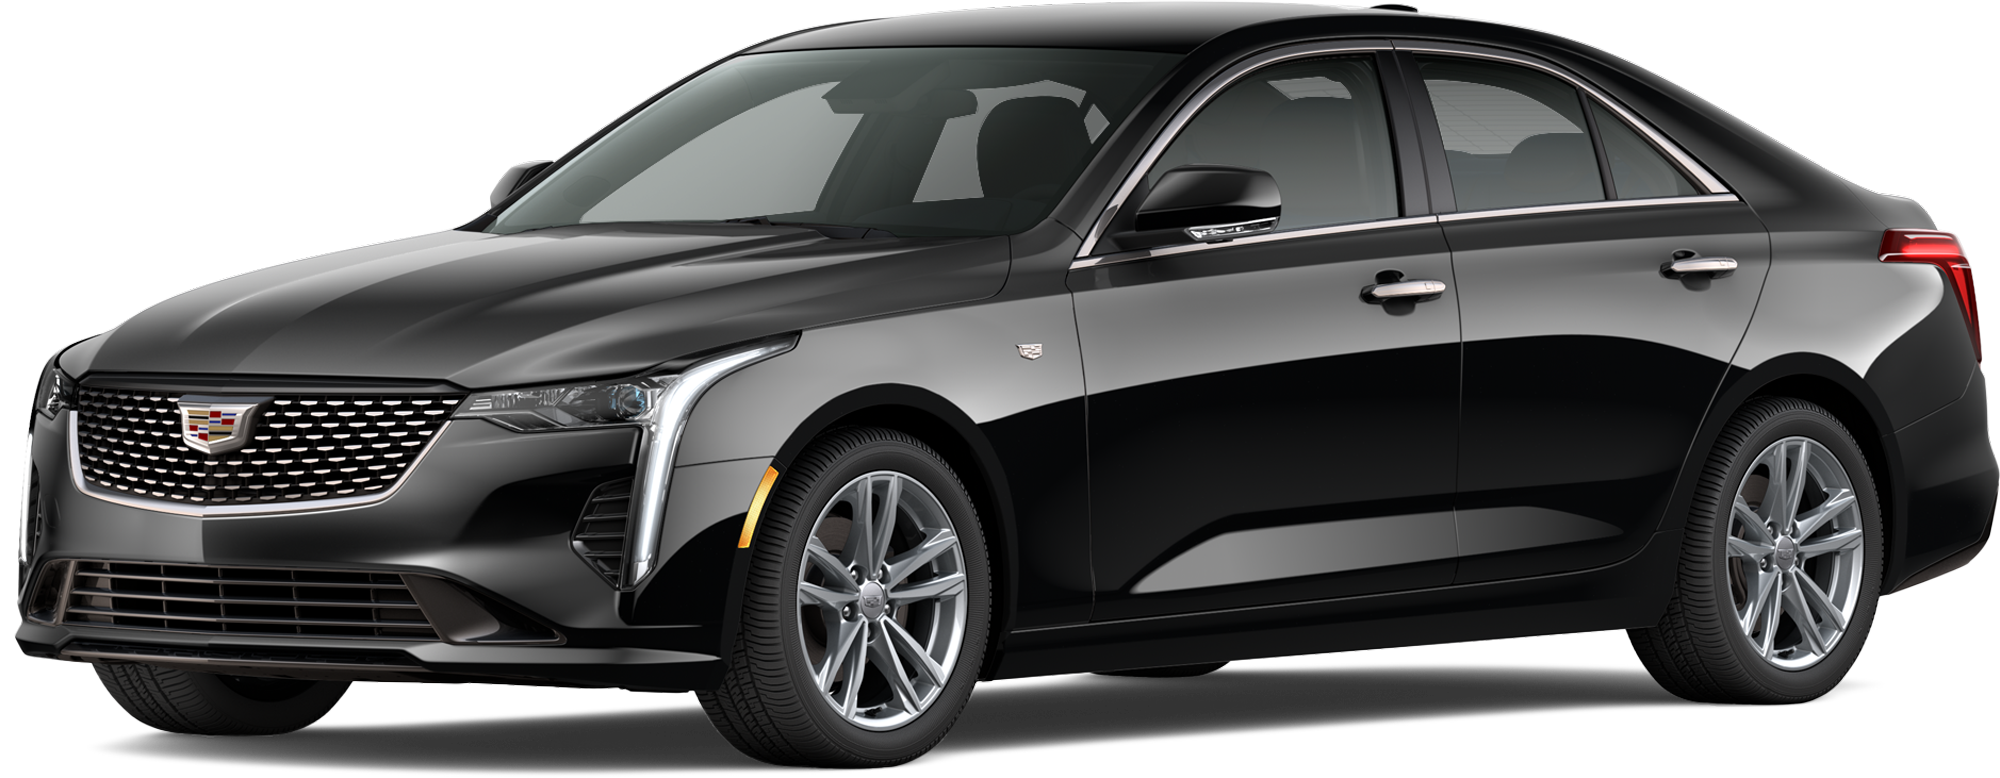 2020 CADILLAC CT4 Incentives, Specials & Offers in Poplar ...